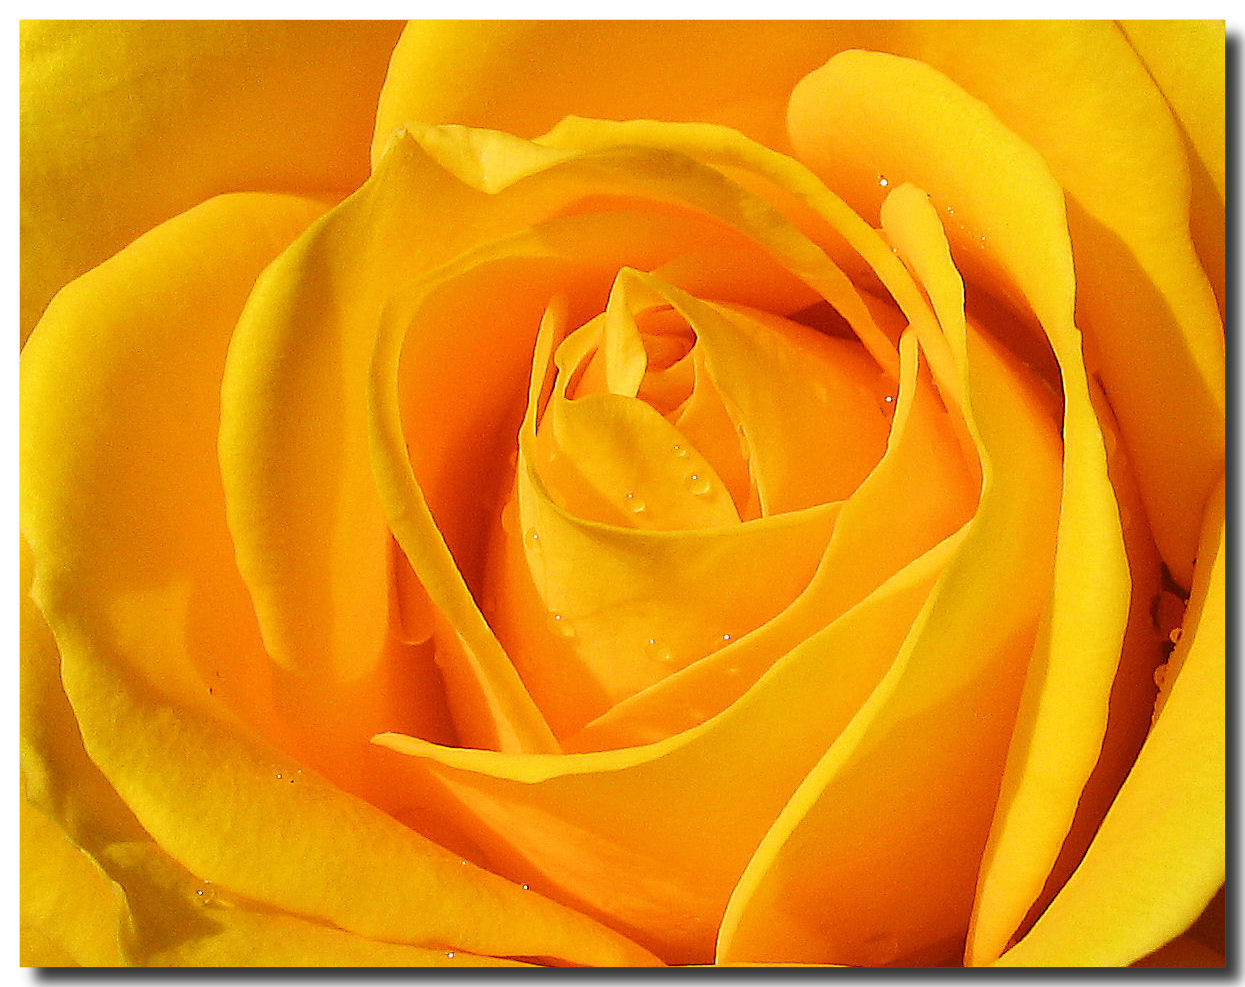 http://3.bp.blogspot.com/-snhypAQDR84/TV31uLSuslI/AAAAAAAAJAg/mdBEBW7ZJB0/s1600/yellow+rose+flowers+wallpapers+%25281%2529.jpg